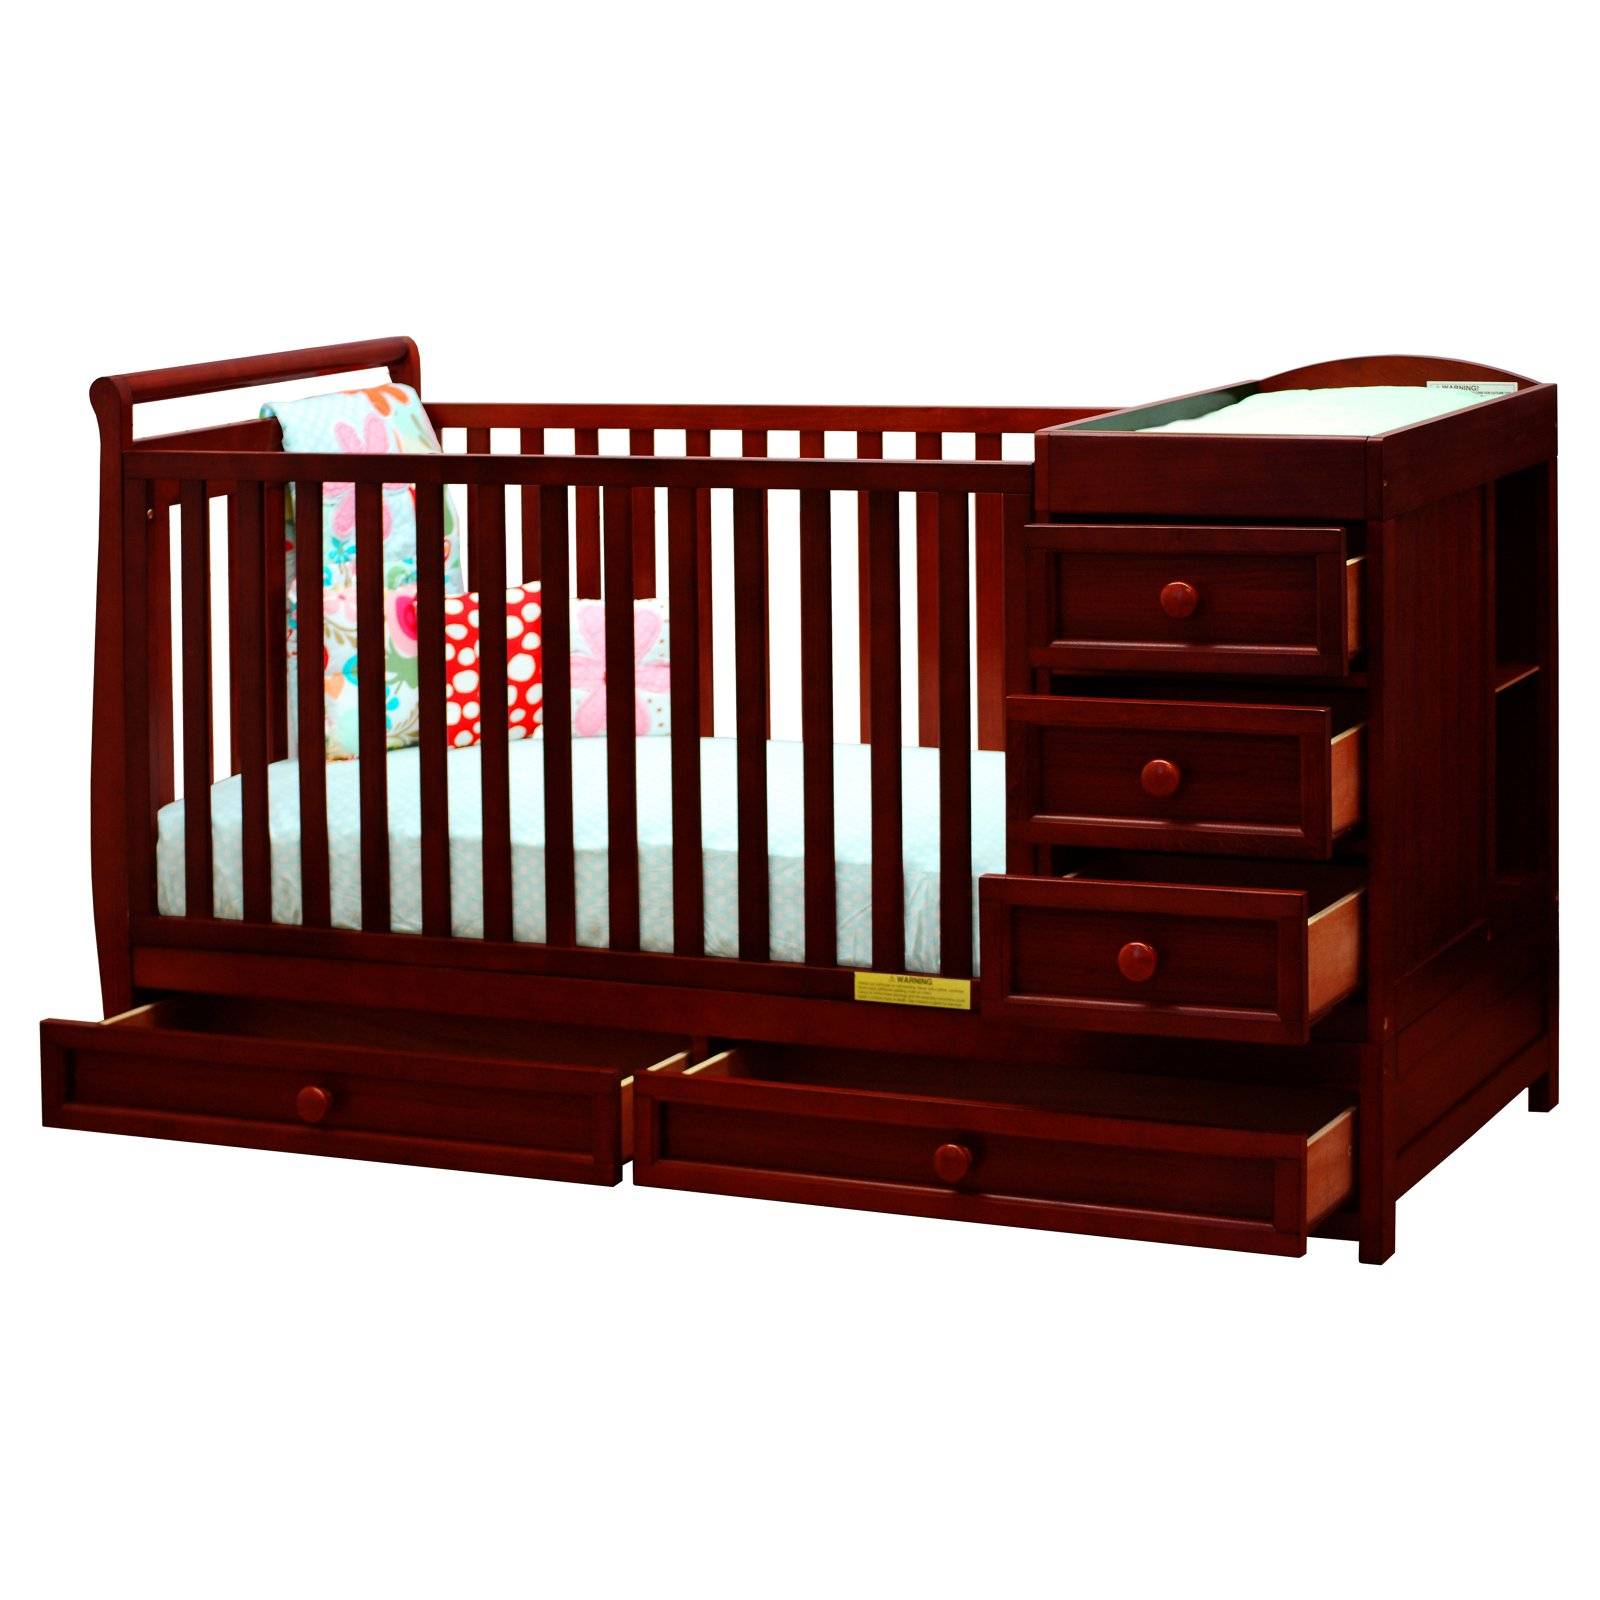 AFG Baby Furniture Daphne 2-in-1 Convertible Crib Cherry